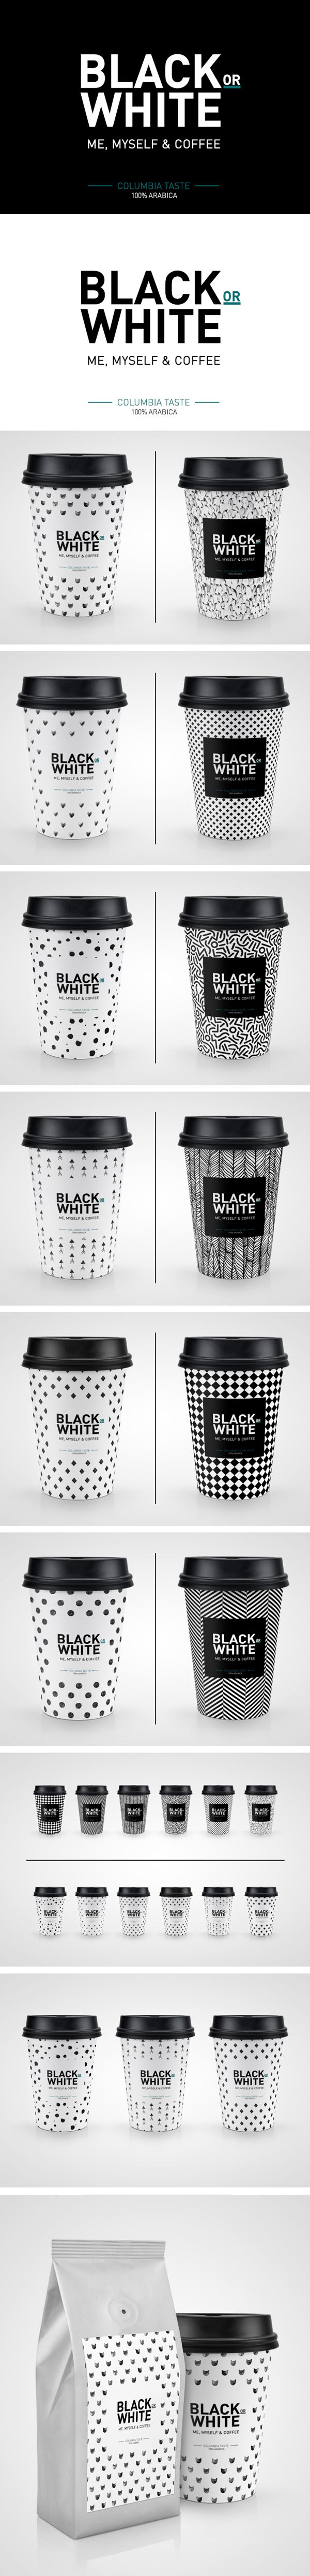 https://www.behance.net/gallery/23414481/Black-or-White-Coffee-Mock-up